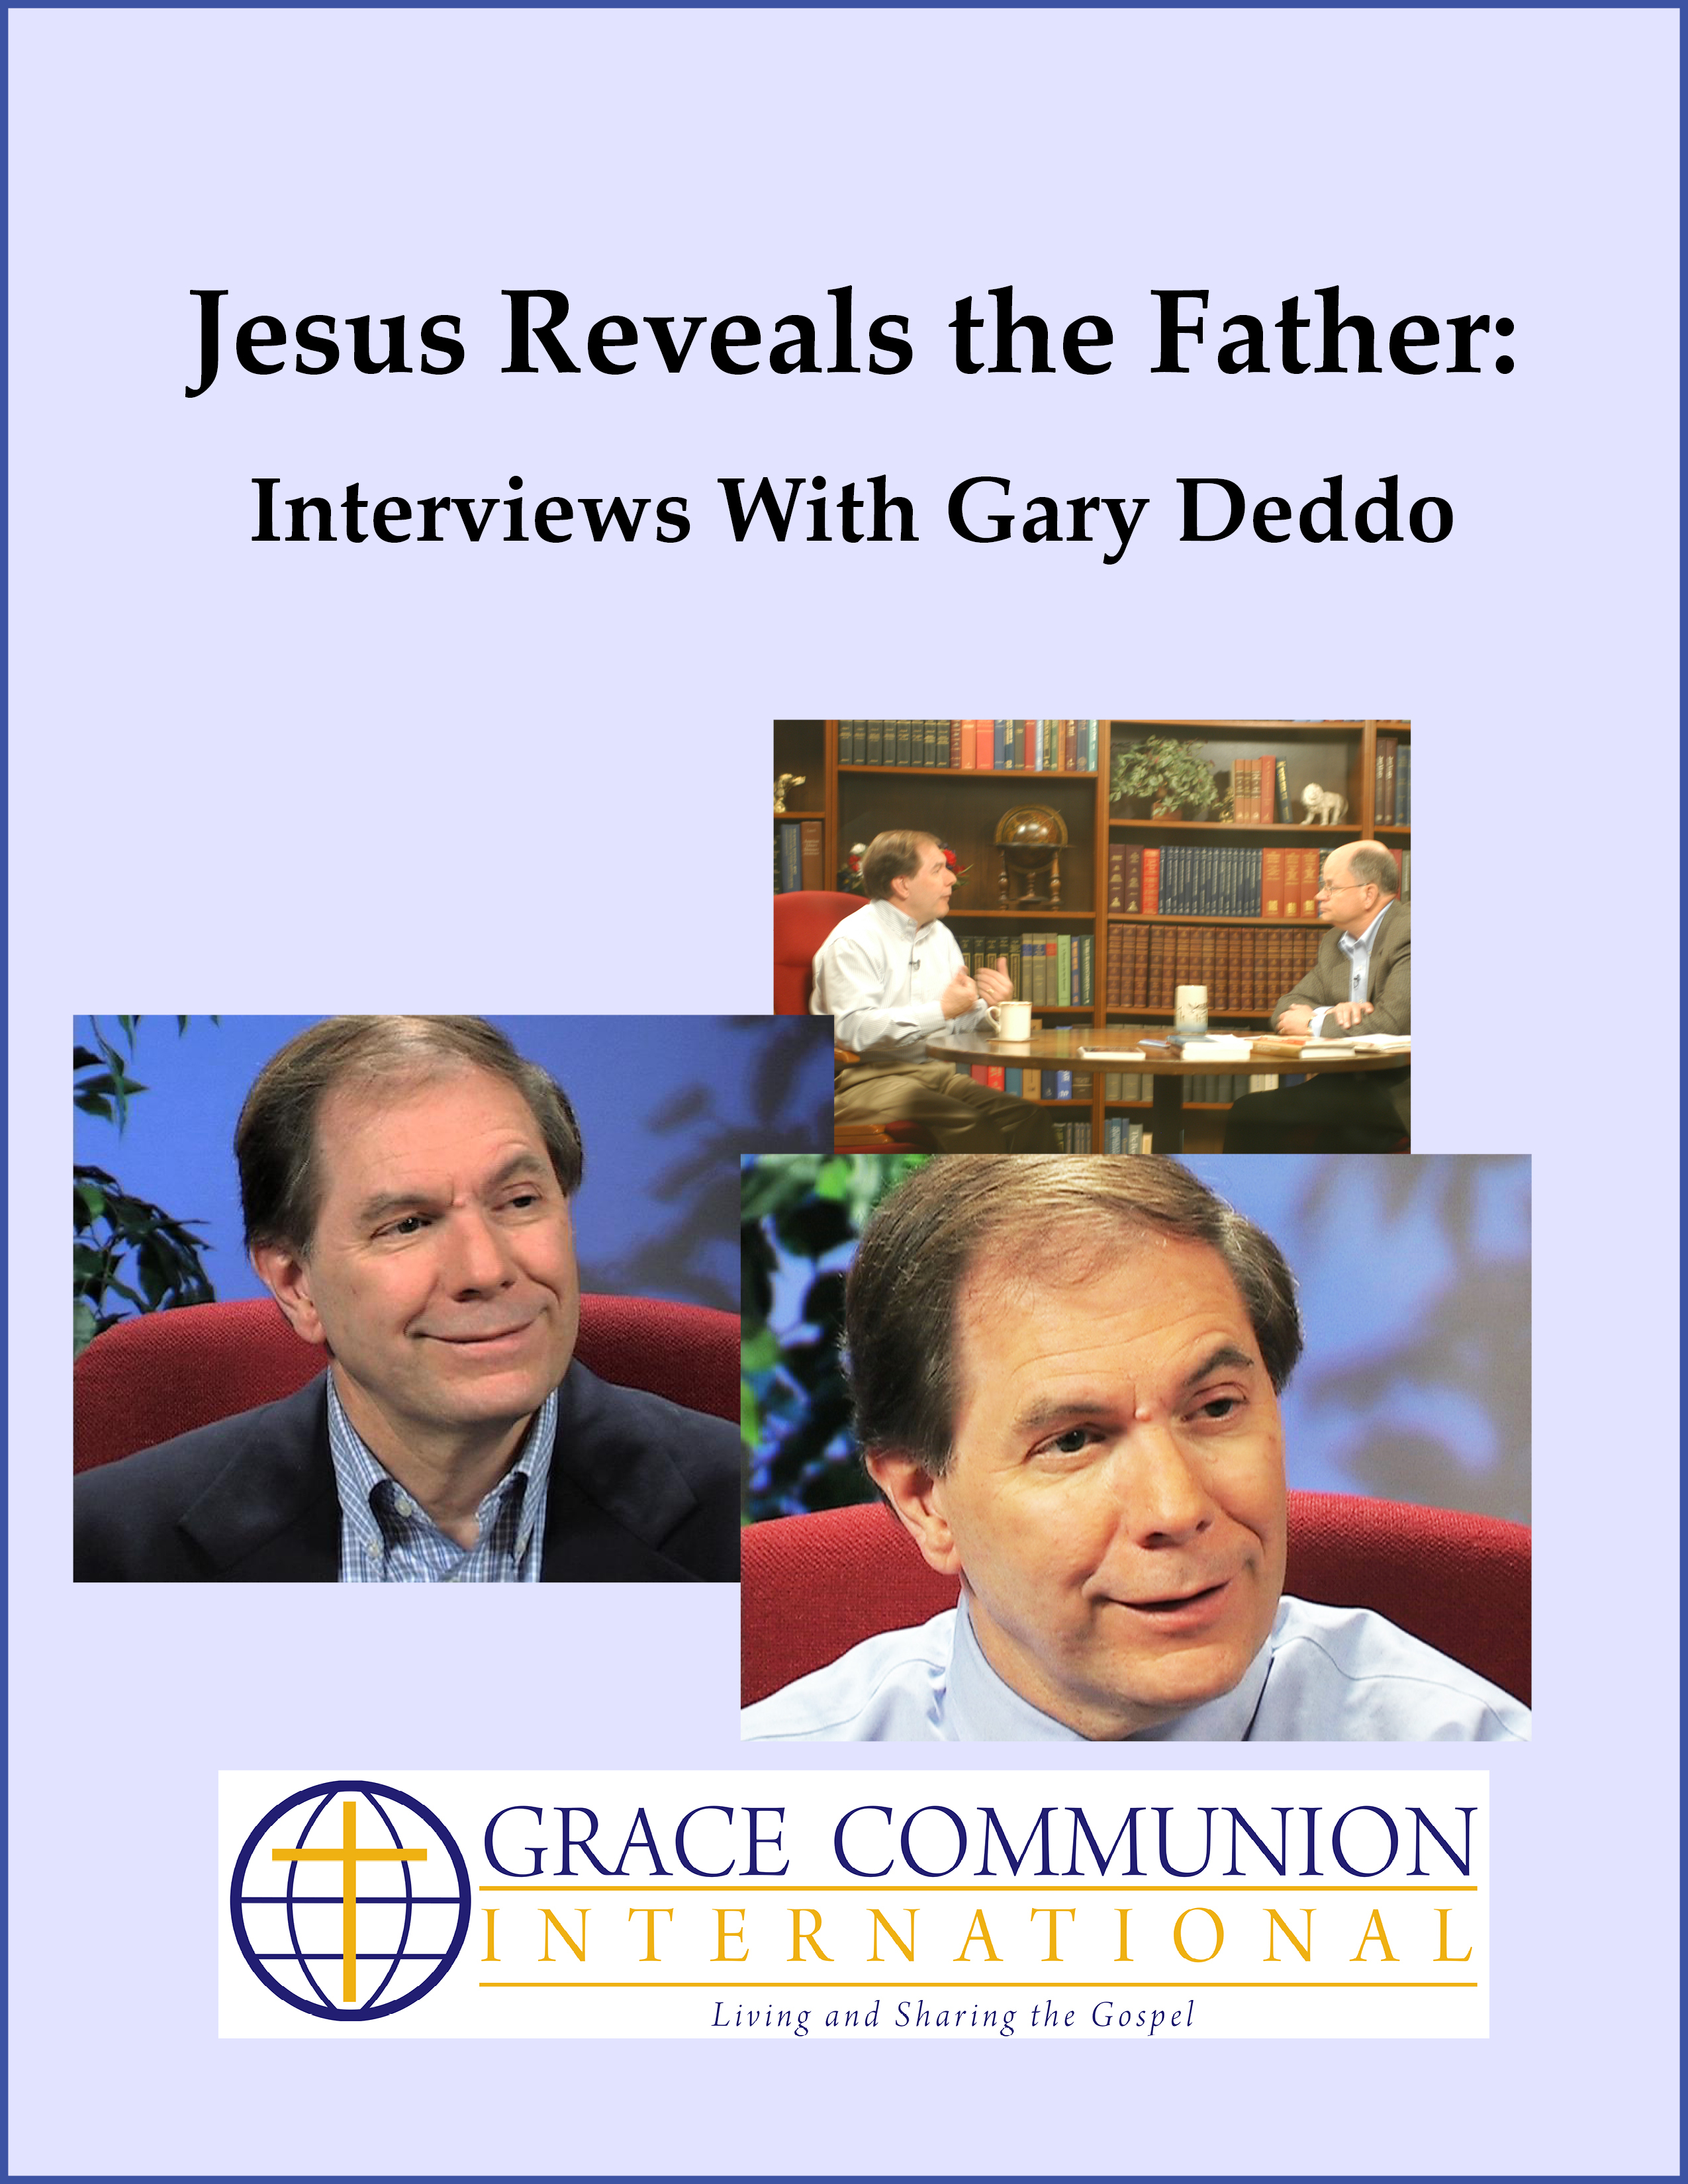 Jesus Reveals the Father: Interviews With Gary W. Deddo